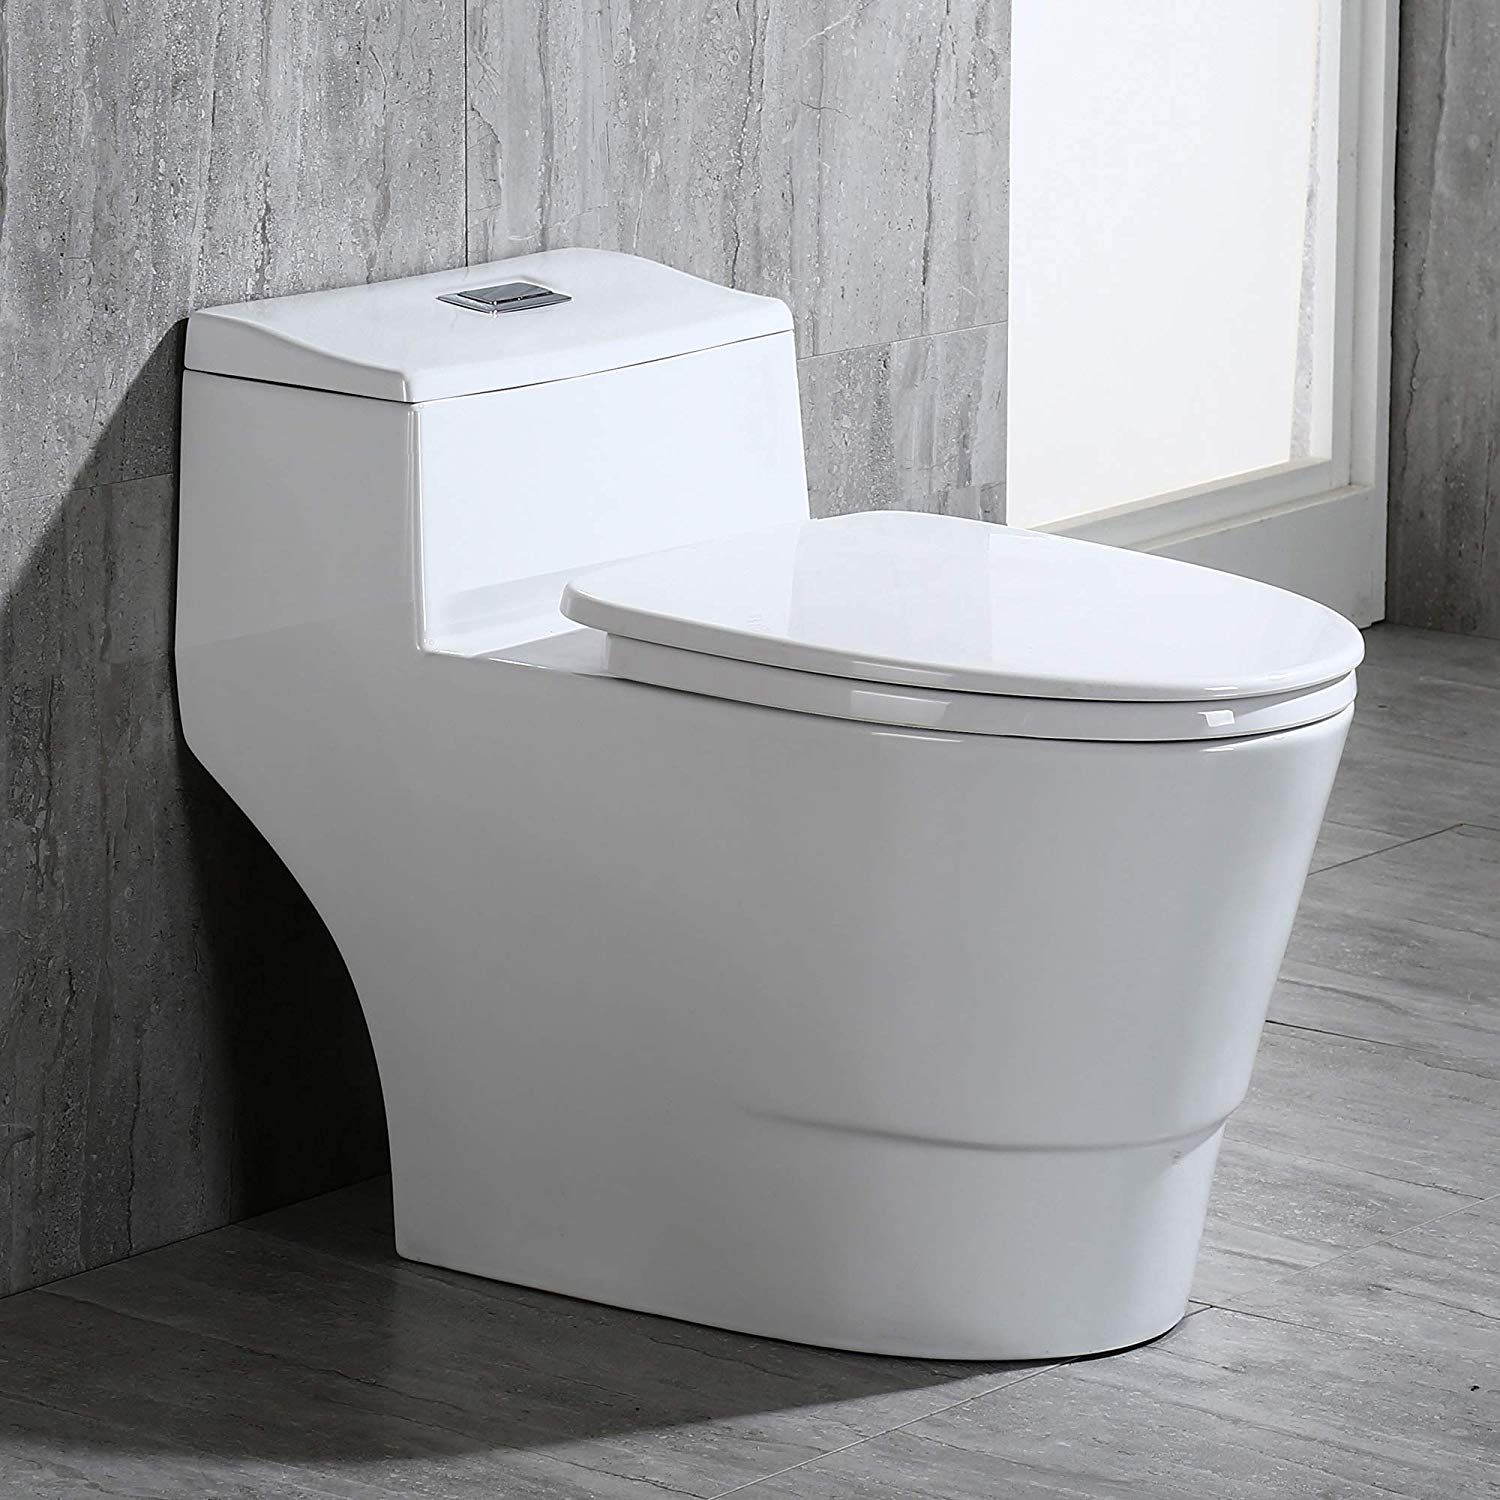 Woodbridge B0735 B 0735 T 0018 Dual Flush Elongated One Piece Toilet With Soft Closing Seat Comfort Height White One Piece Toilets Water Sense Wood Bridge